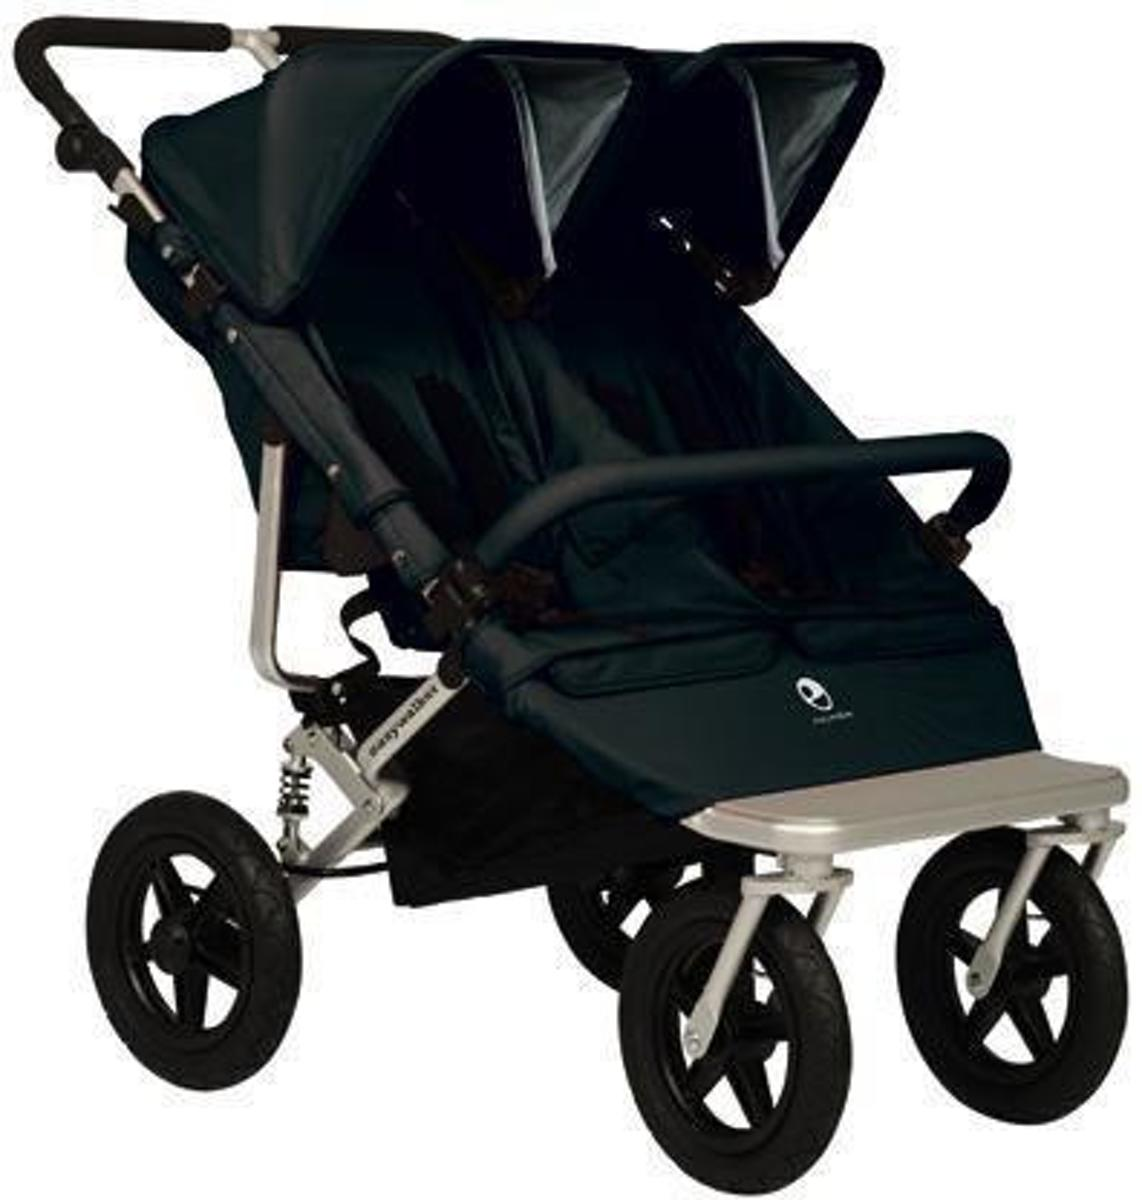 Kinderwagen Easywalker Duo Bol Easywalker Duo Base Plus Zwart